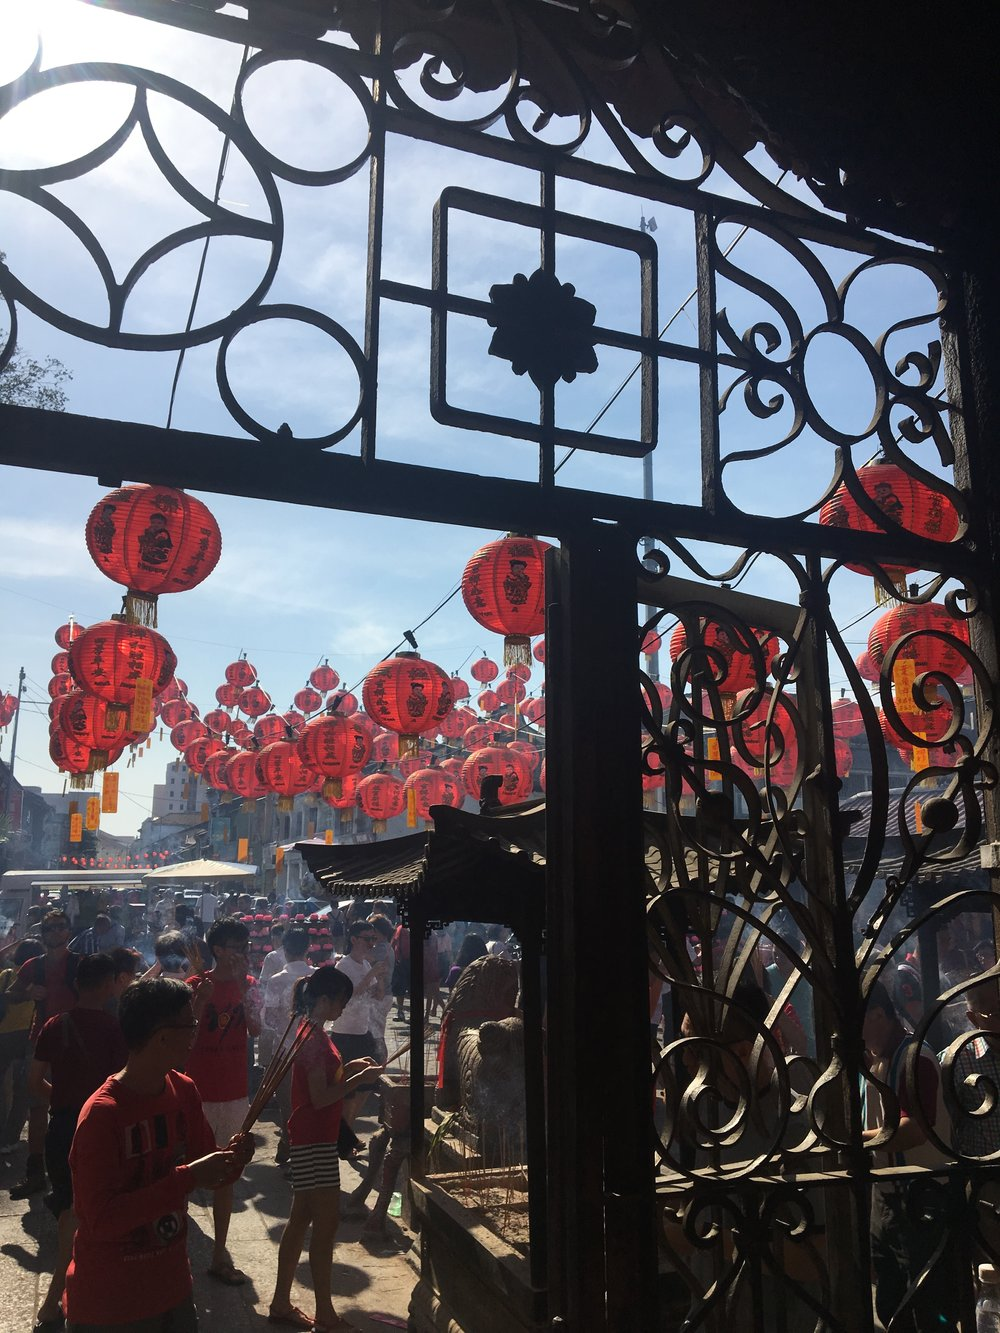 A temple at Chinese New Year which was rich with incense, fire crackers and people tussling for little red envelopes.